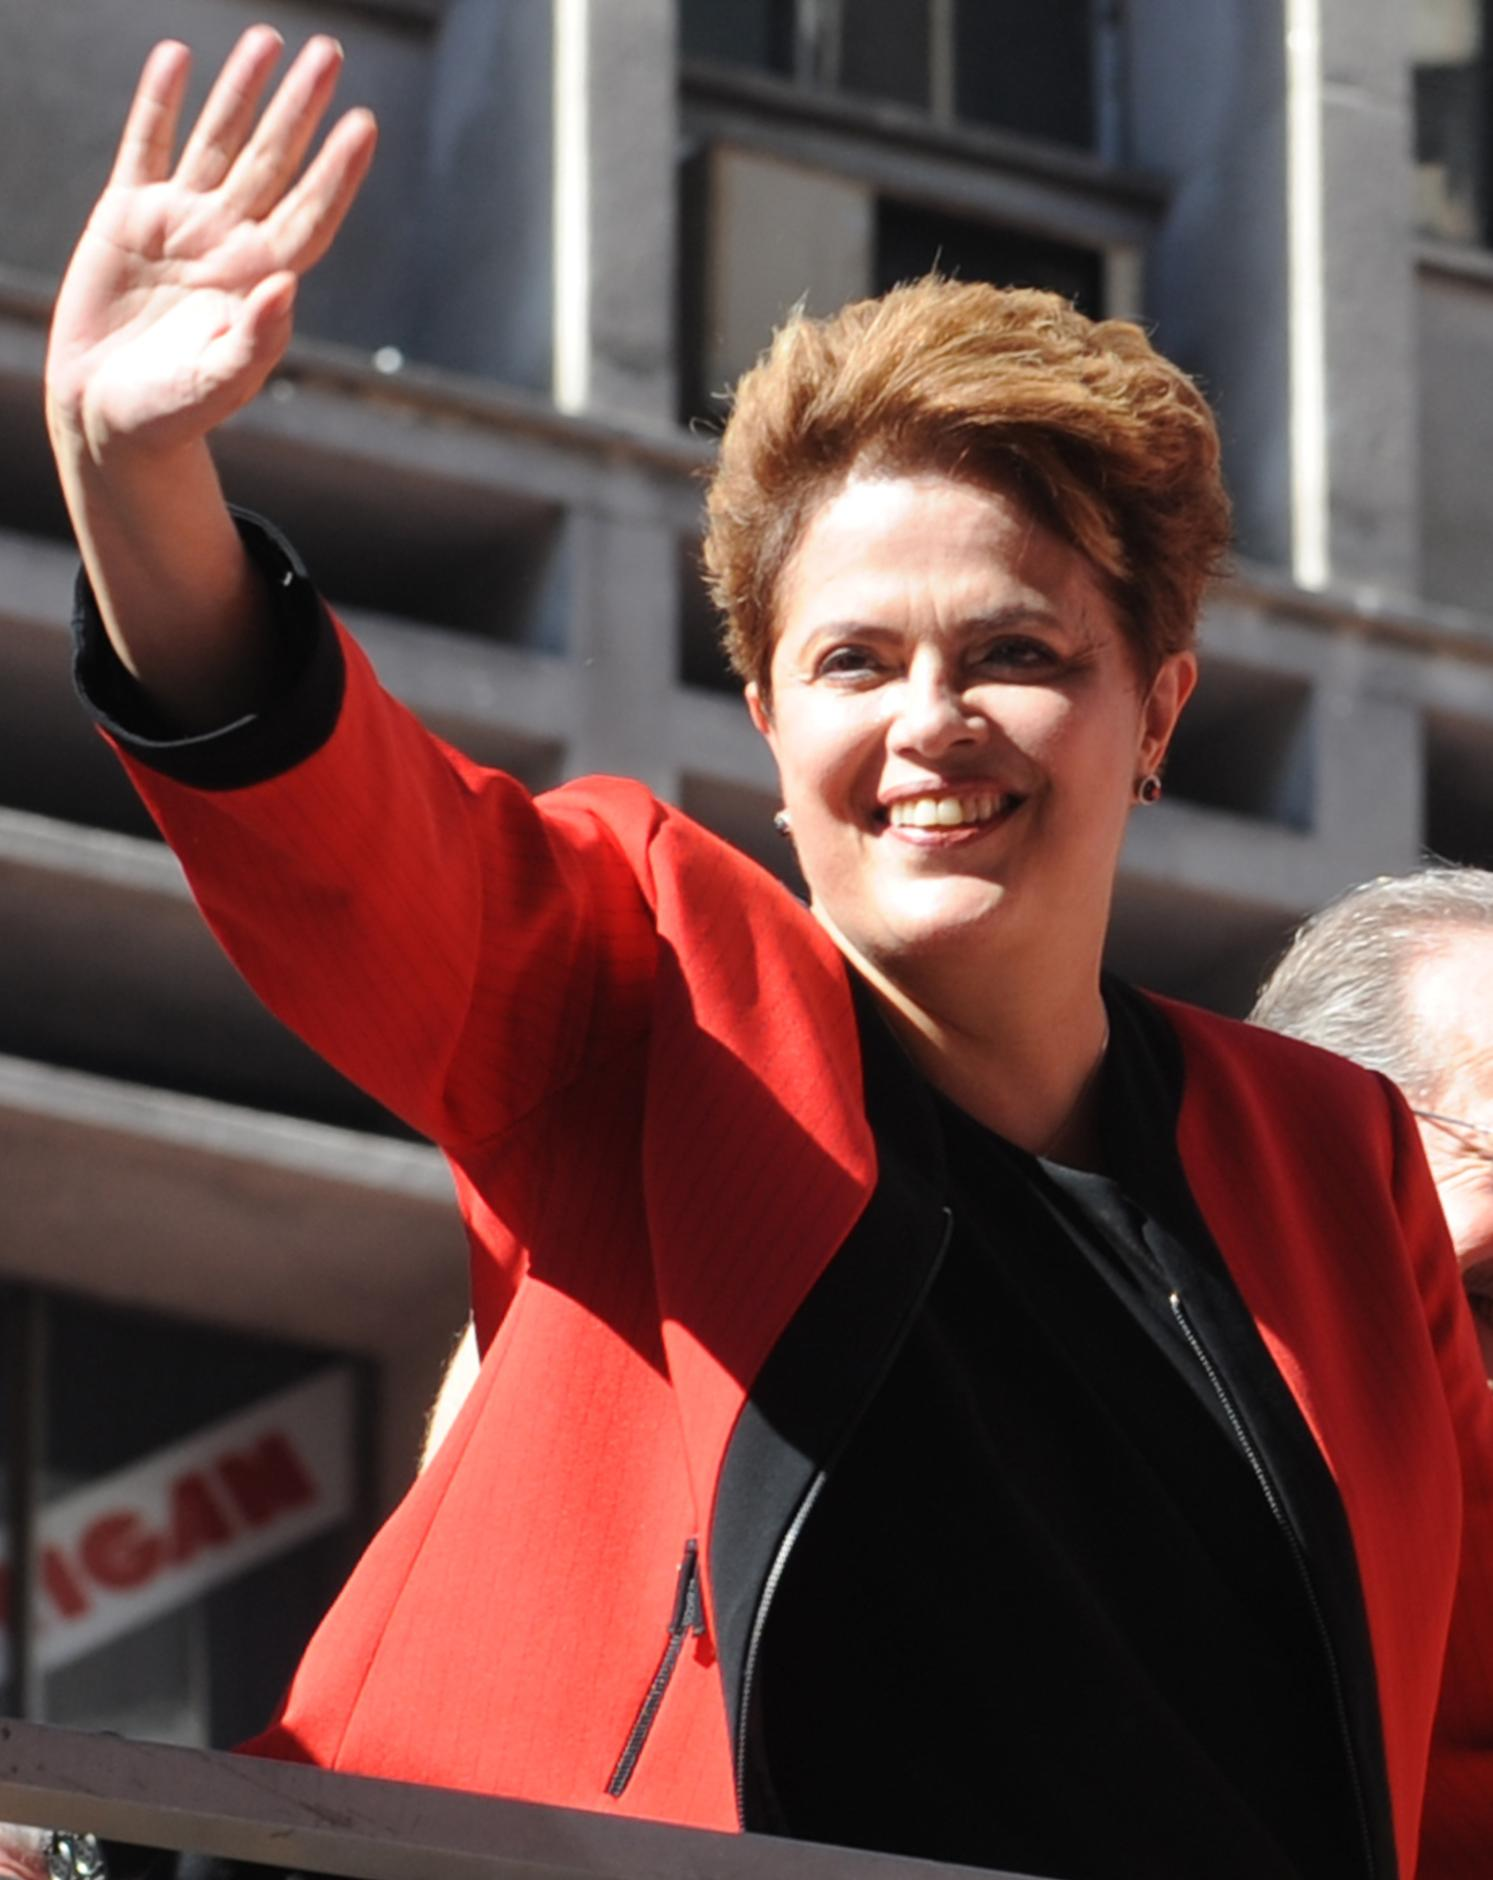 Brazil's President-Elect Dilma Rousseff